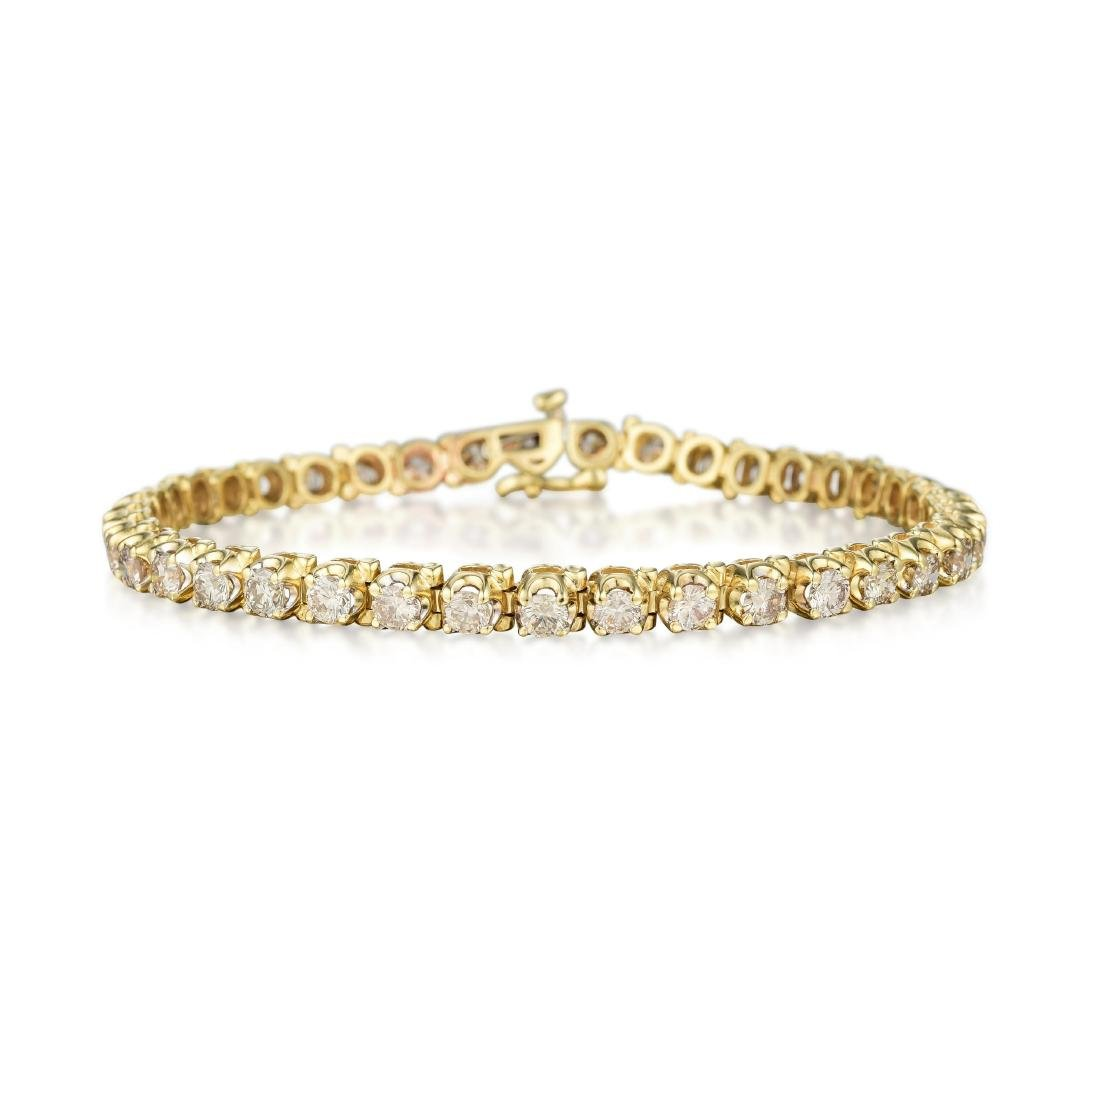 A 14K Gold Diamond Tennis Bracelet